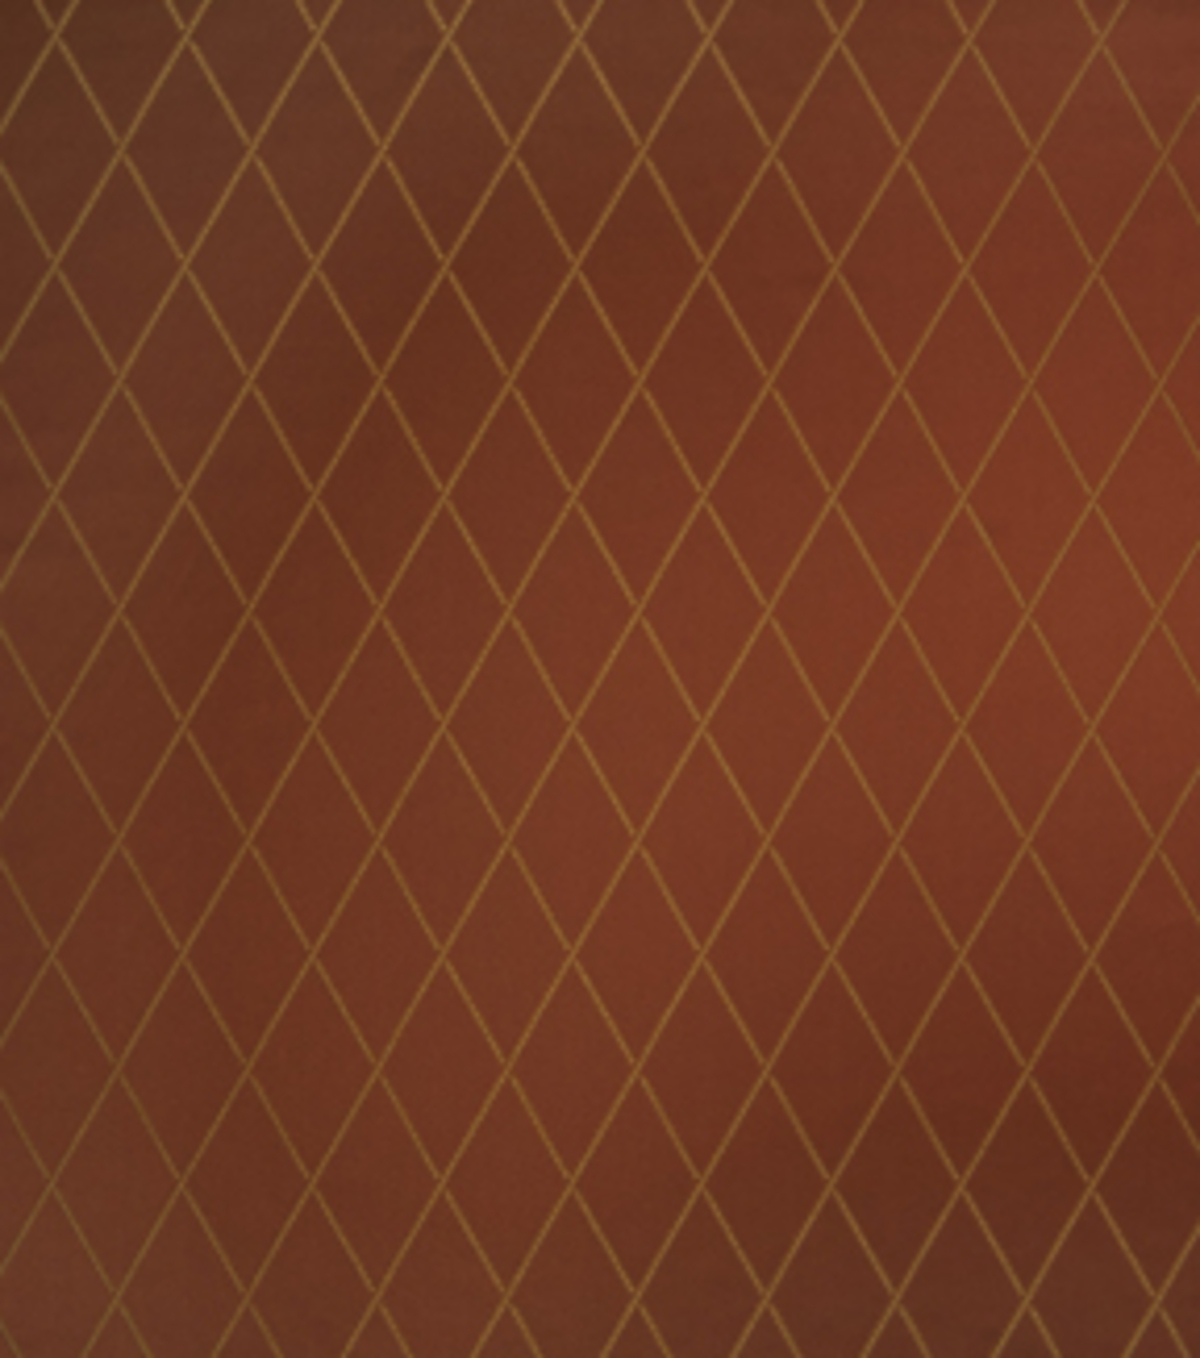 Home Decor 8\u0022x8\u0022 Fabric Swatch-Eaton Square Caliber Brick